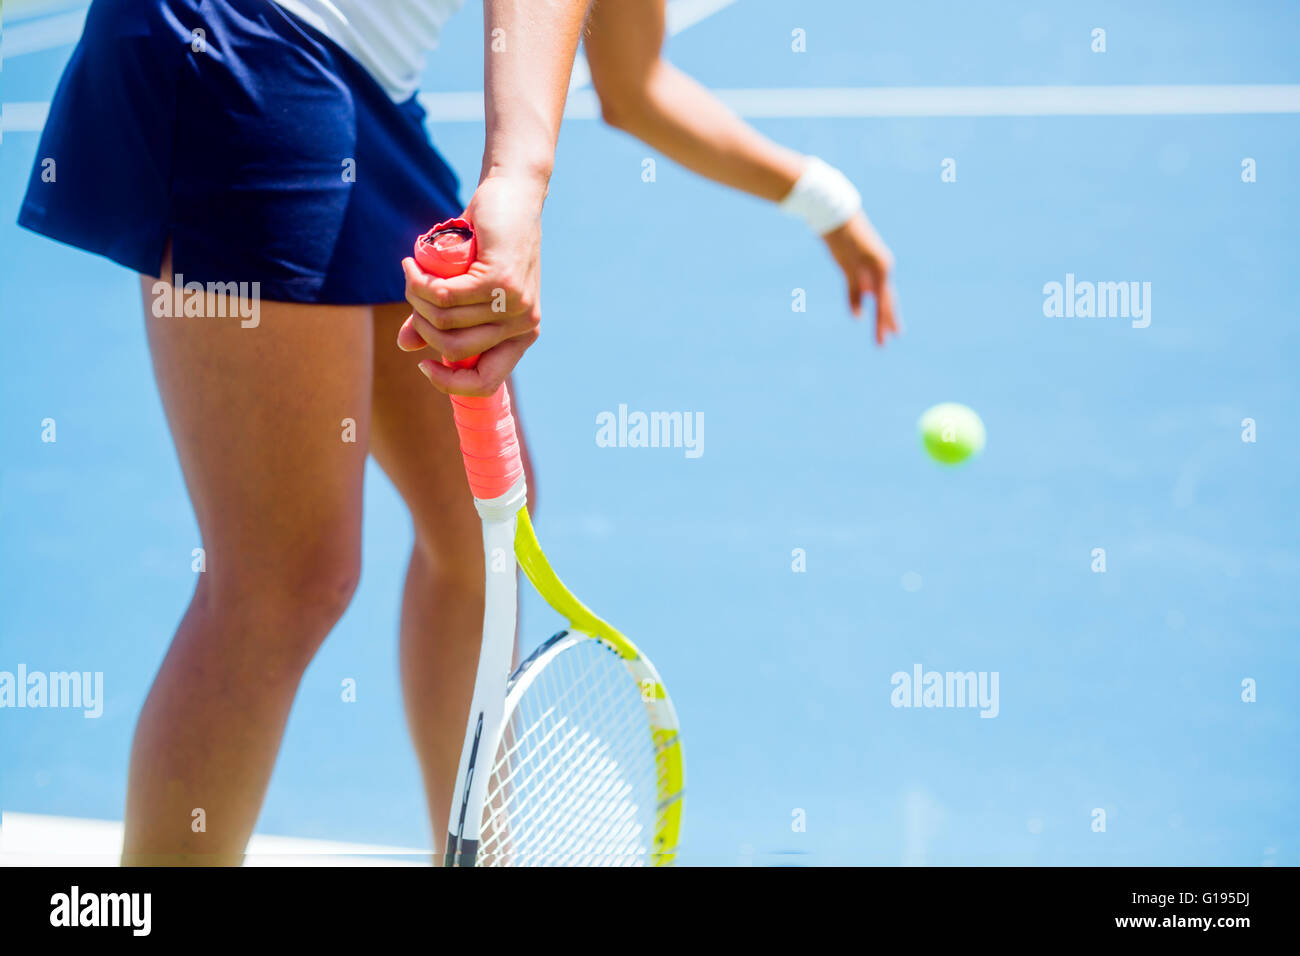 Beautiful female tennis player serving outdoor - Stock Image